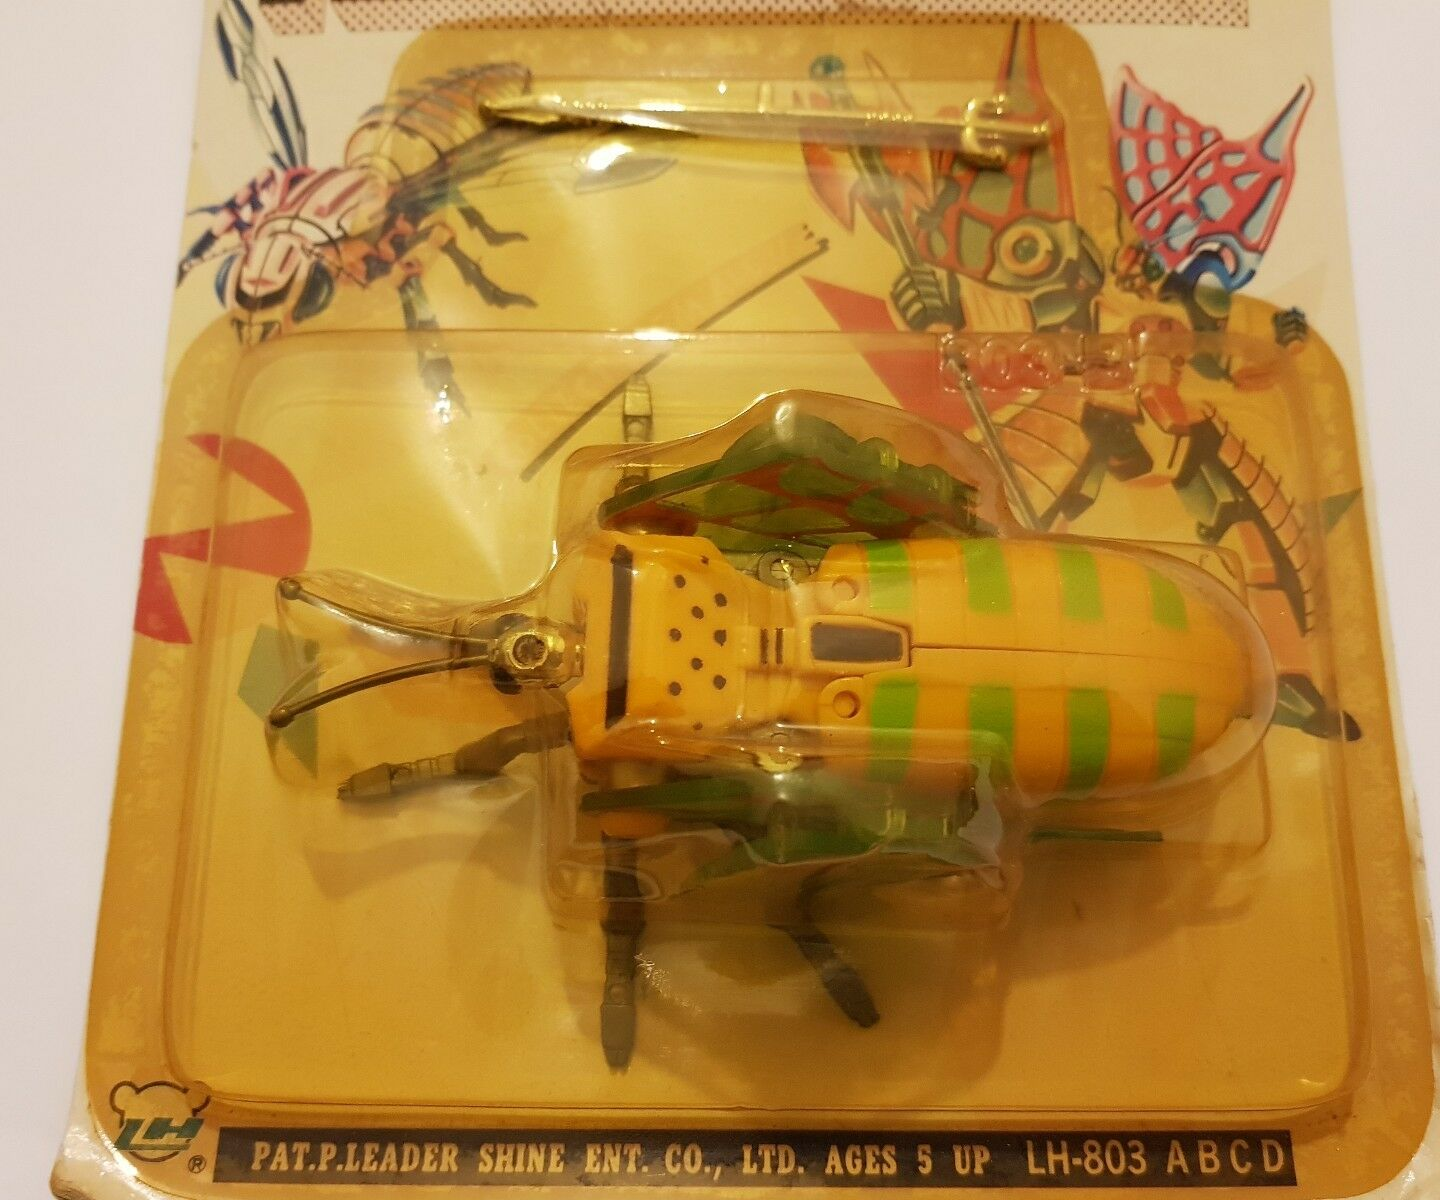 Vintage Figura Fighting Insect Insect Insect BUTTERFLY Transformable Robot Leader Shine NUEVA 8432fd